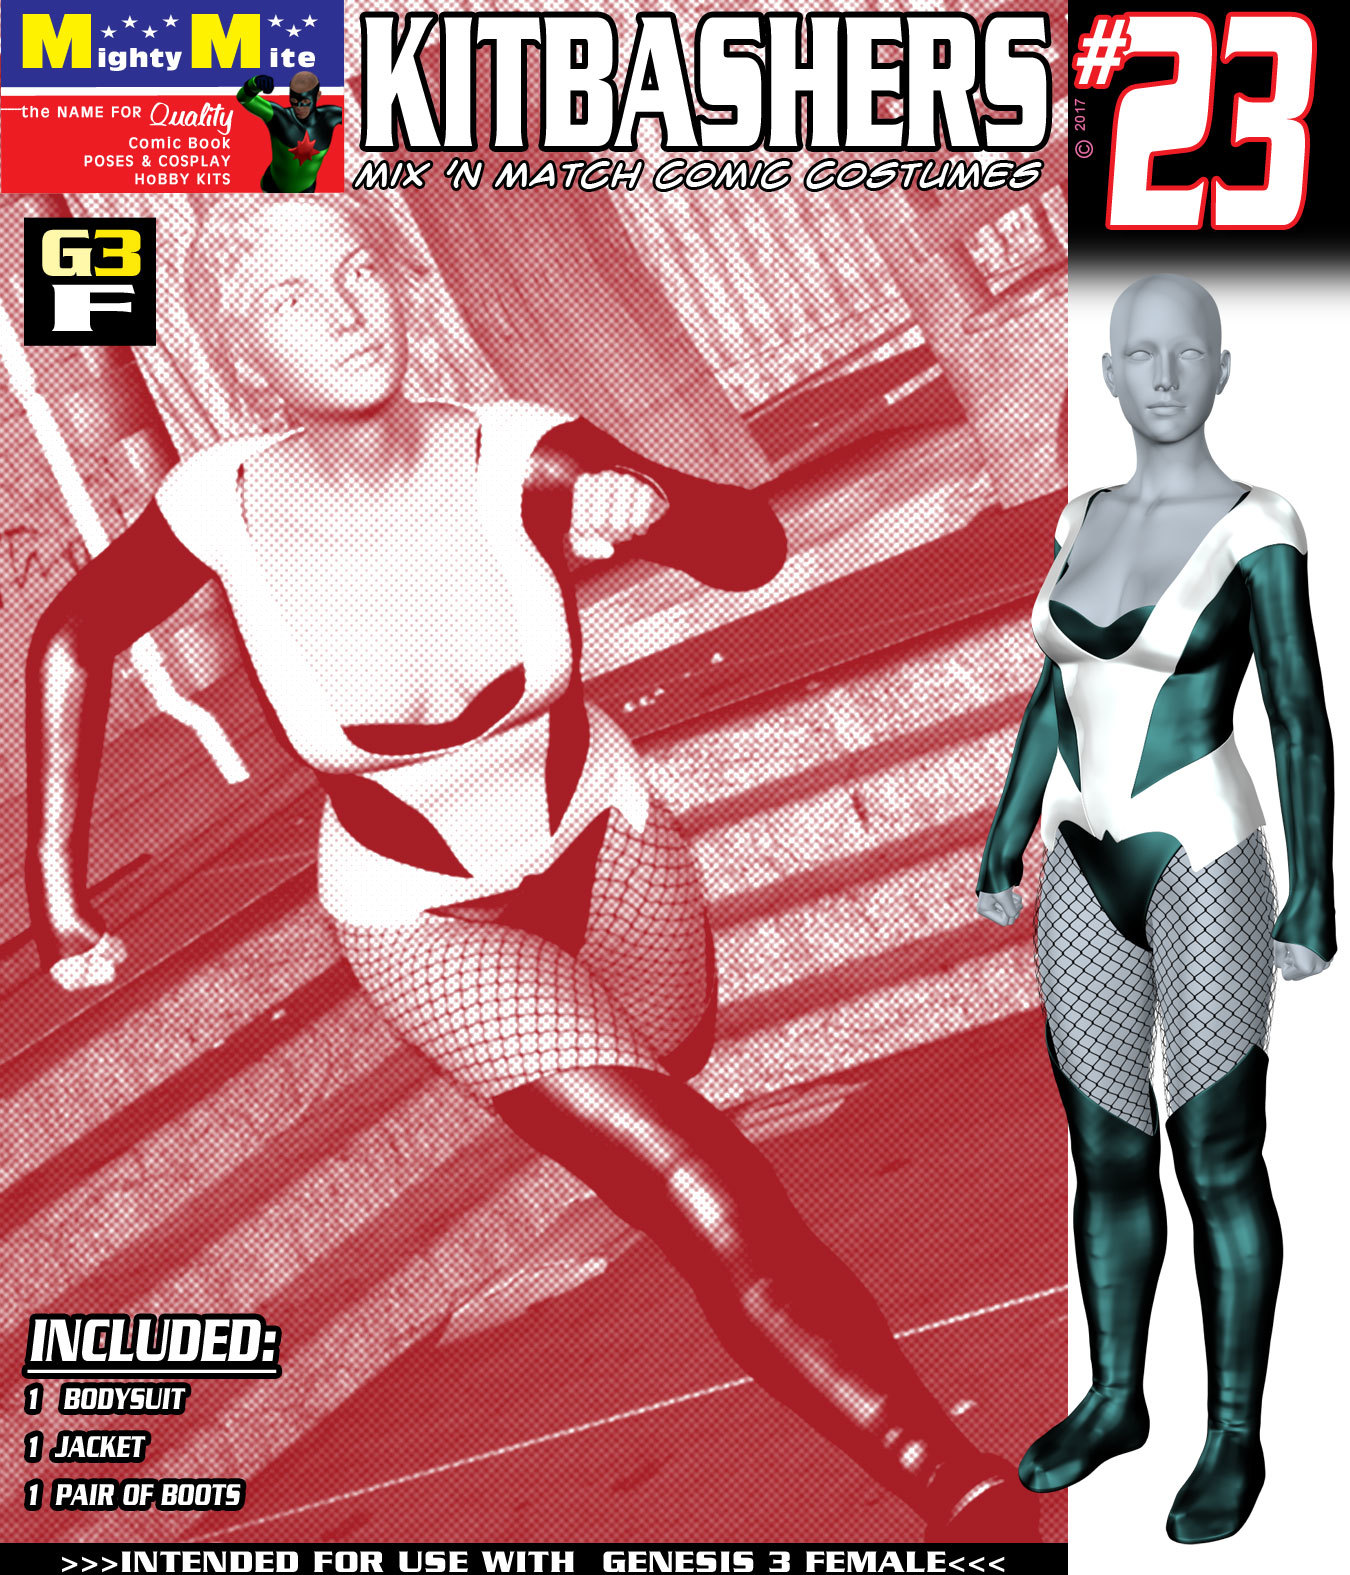 Kitbashers 023 MMG3F by MightyMite